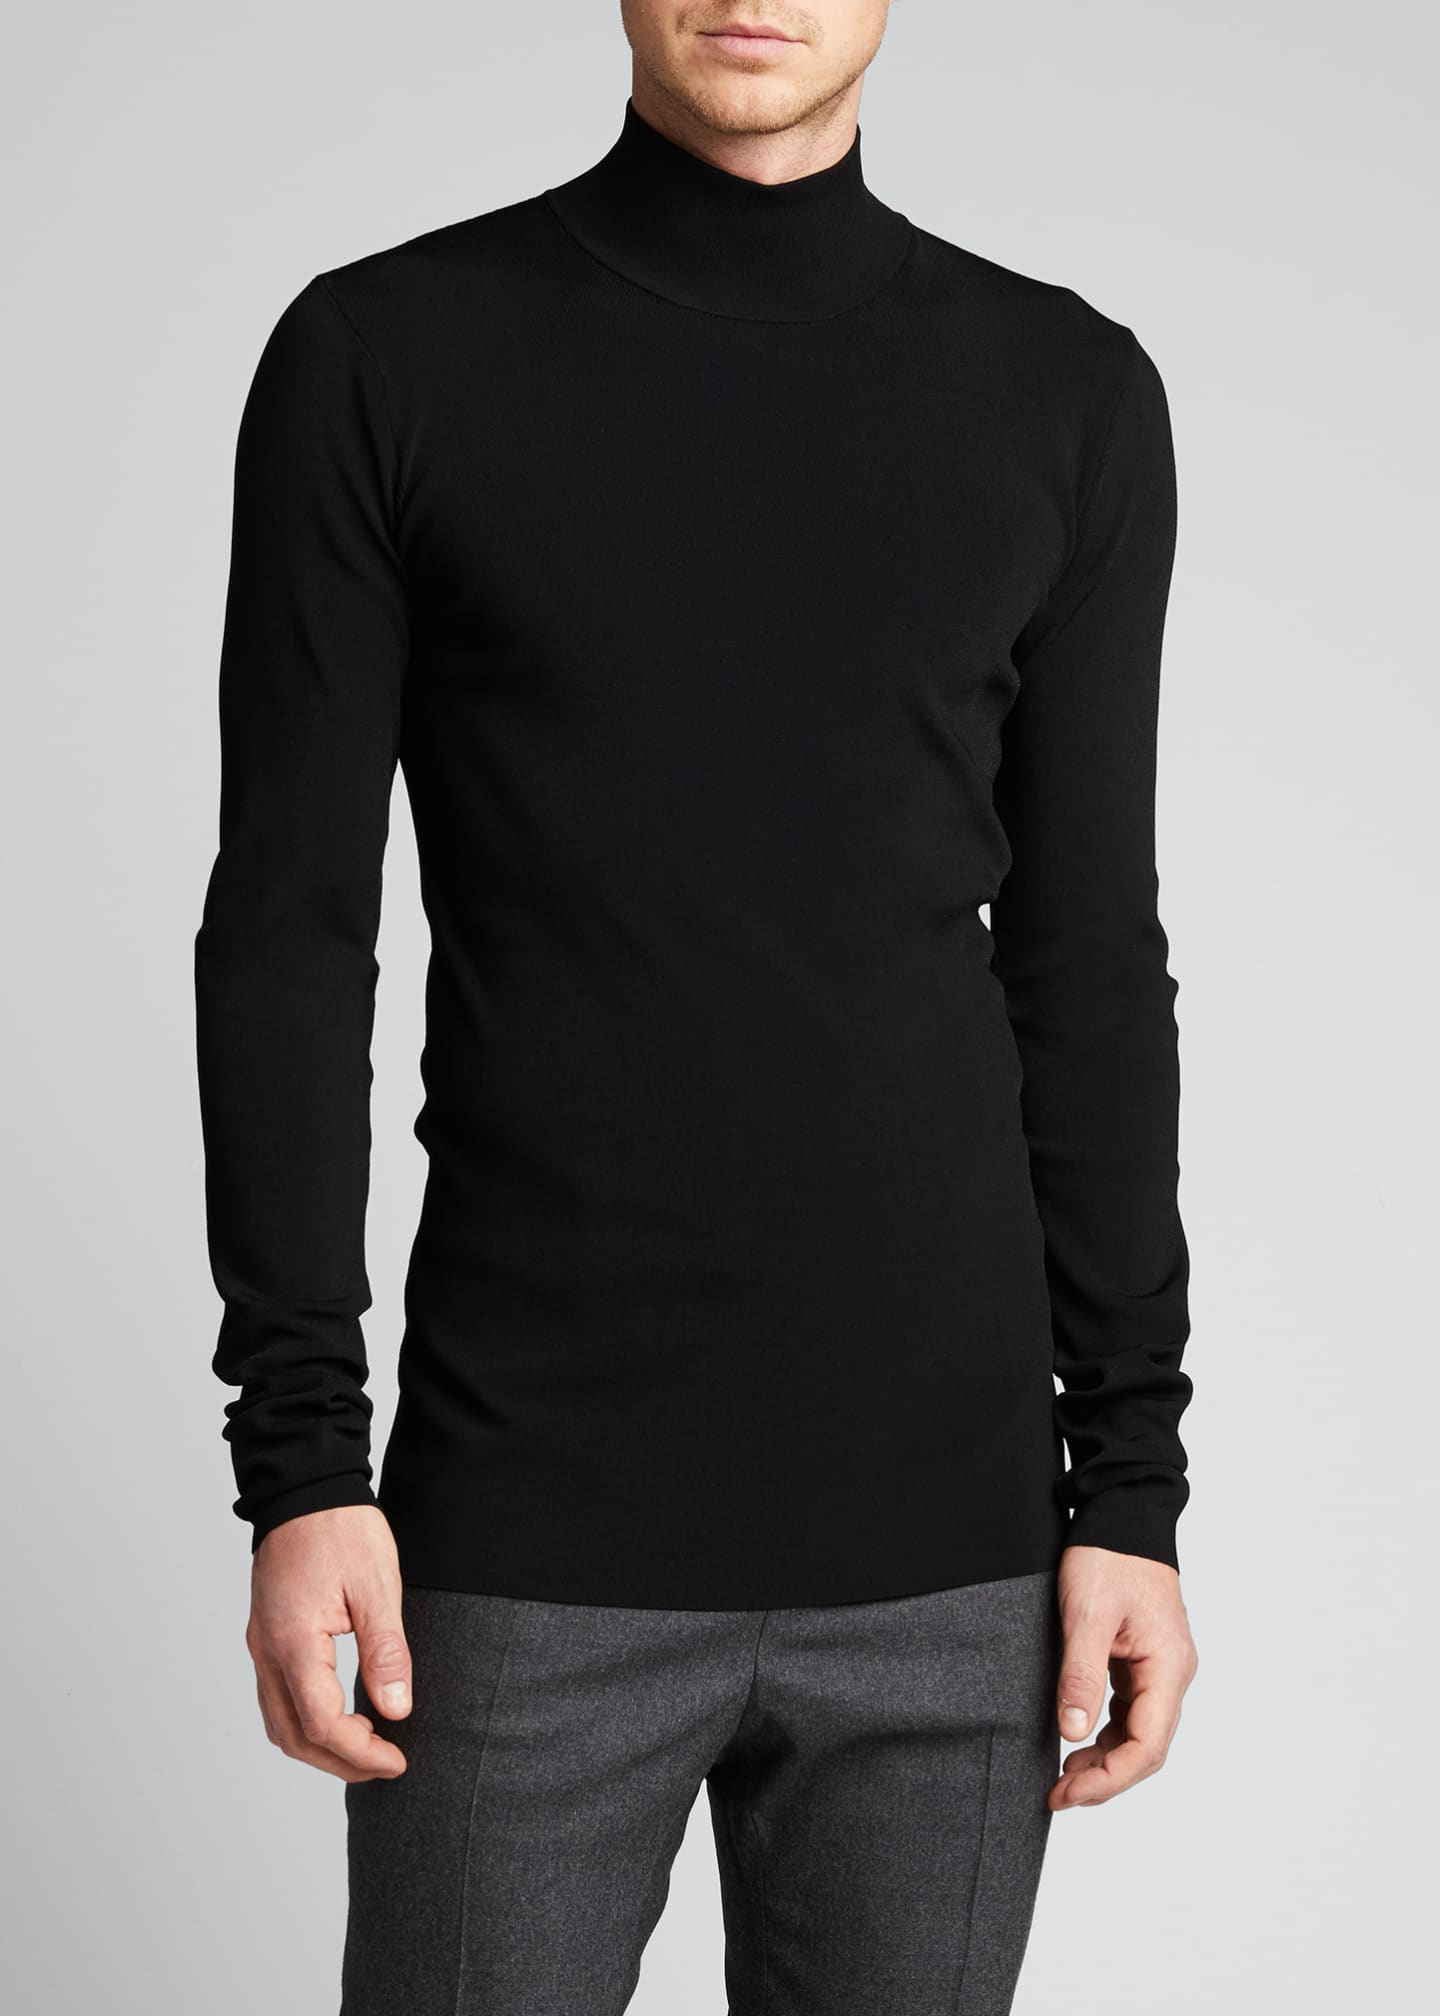 Image 3 of 5: Men's Tech-Knit Turtleneck Sweater